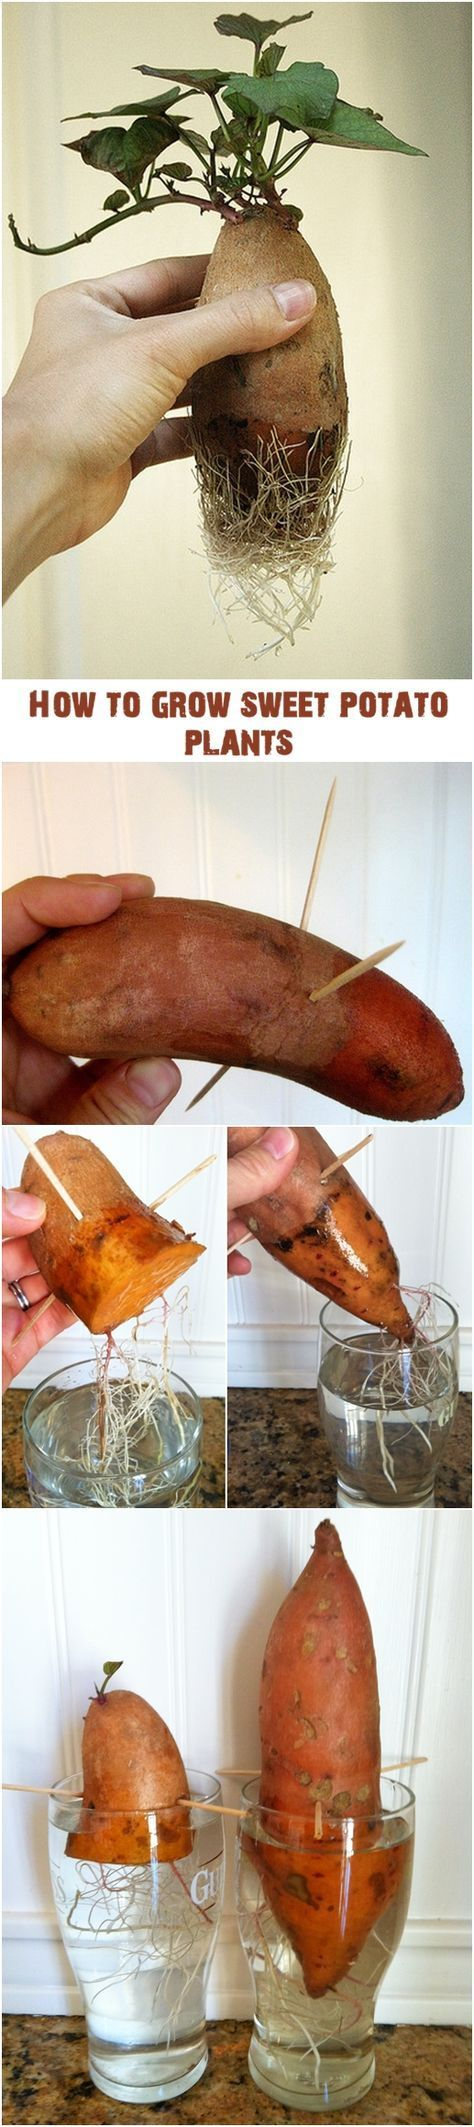 """Sweet potatoes in the U.S. are grown mostly in the South. They are planted in the spring by """"slips."""" These are the small rooted pieces of the vine that grow from the """"eyes"""" or buds of the potato. H..."""